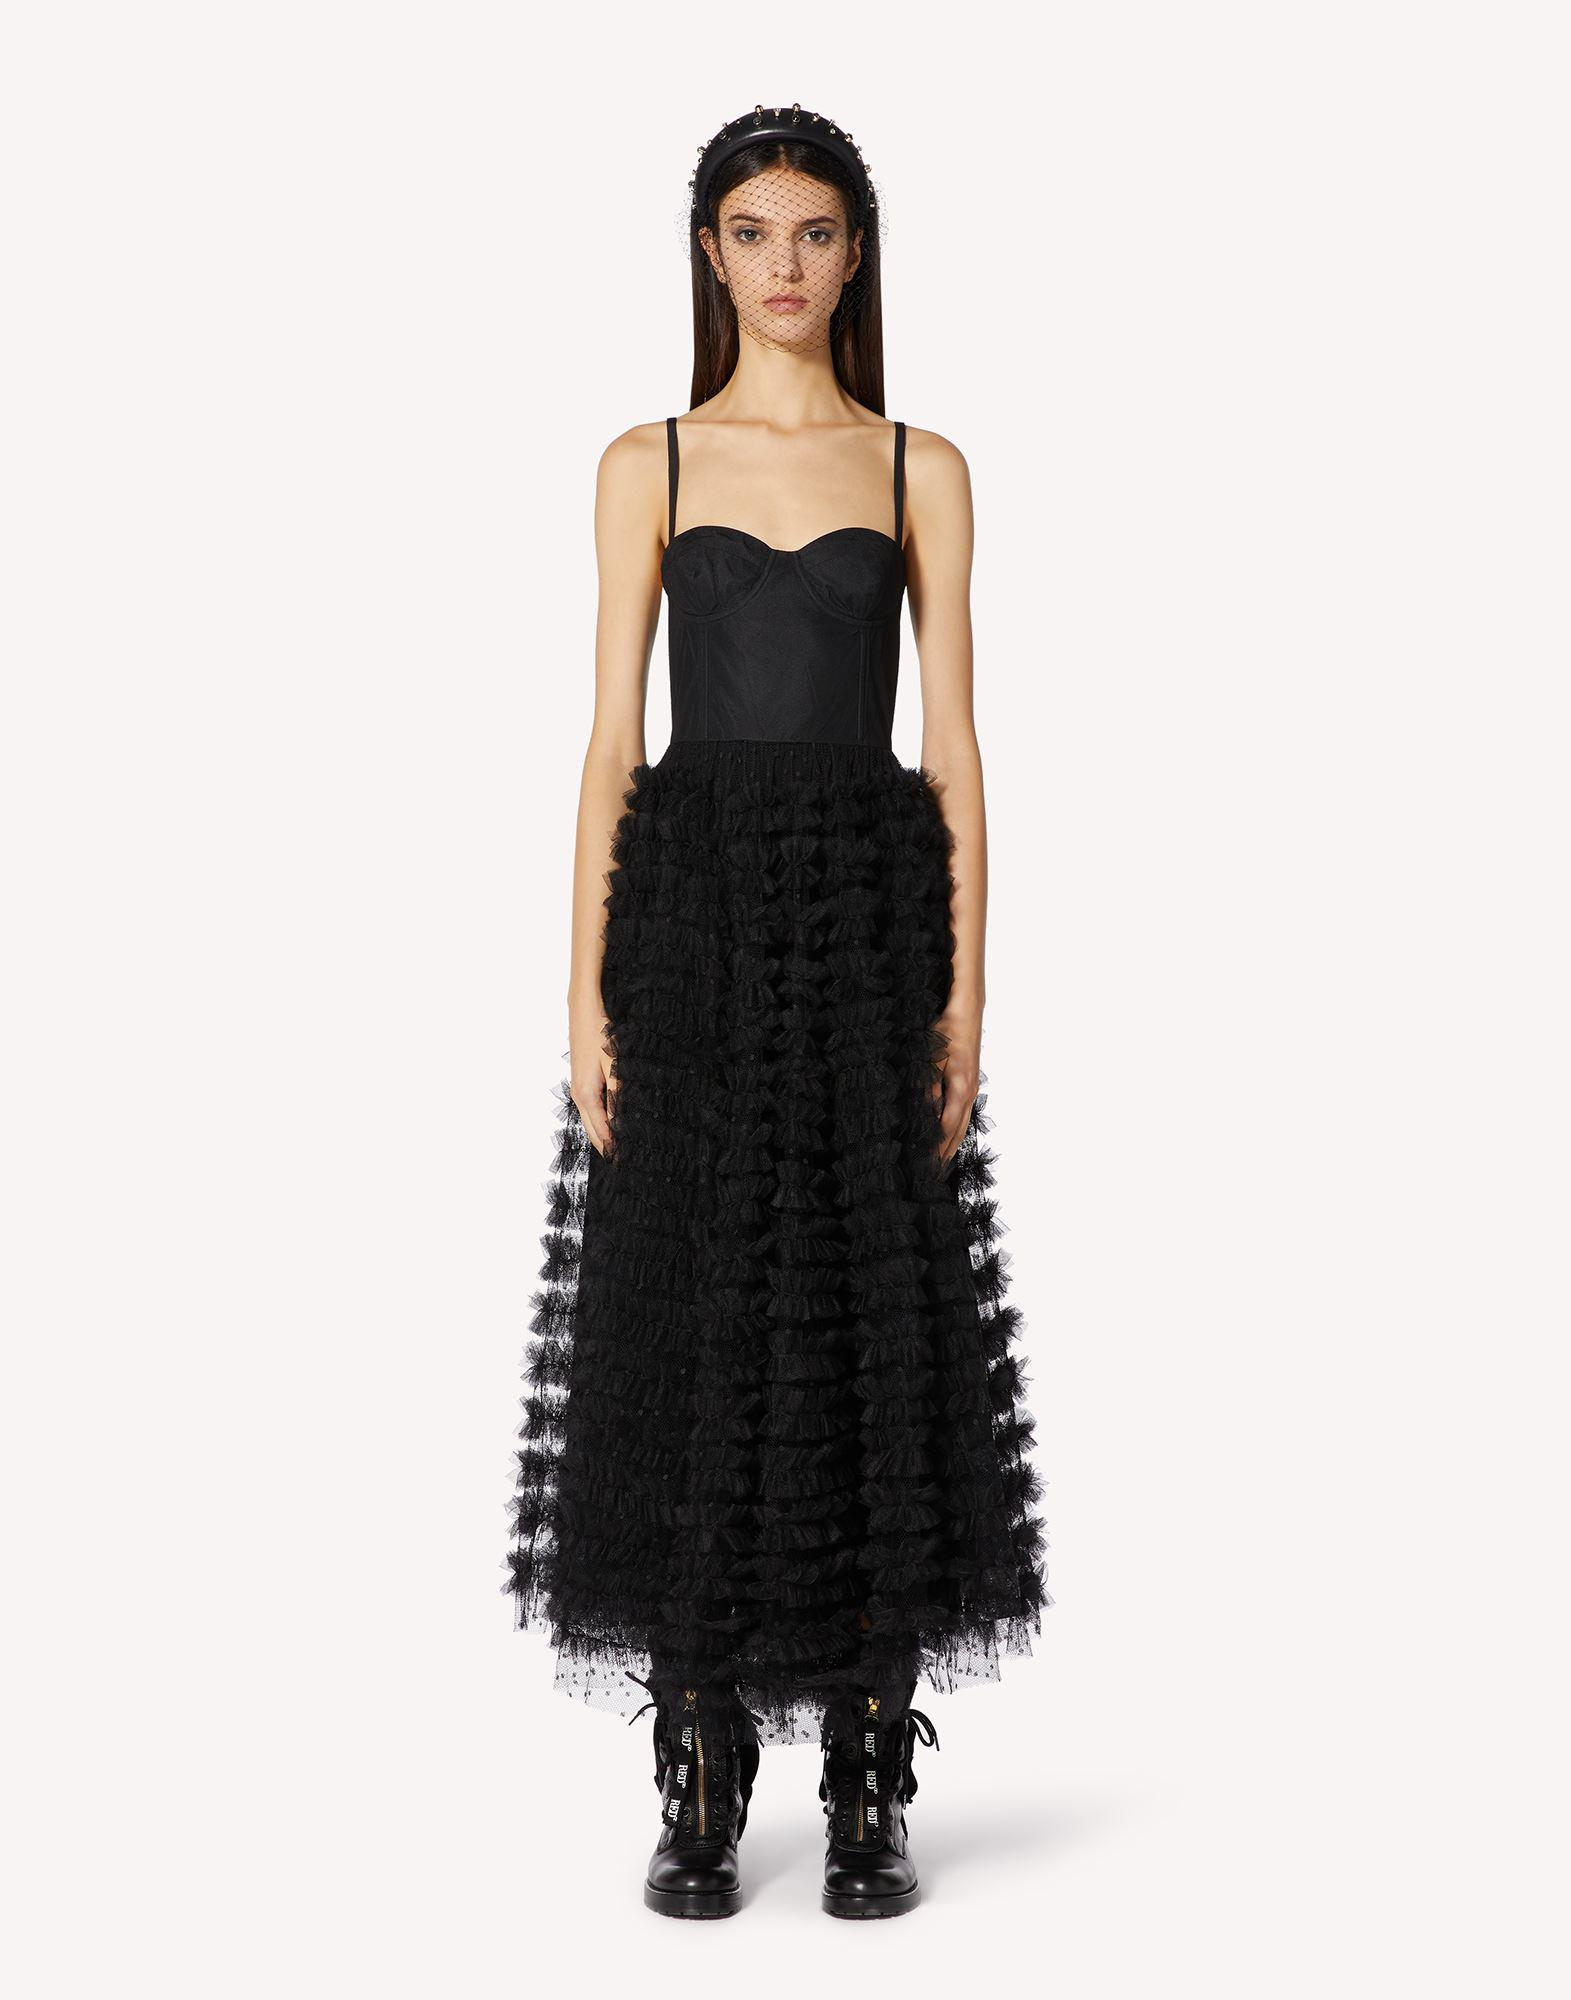 CORSET-LIKE DRESS WITH POINT D'ESPRIT TULLE RIBBONS